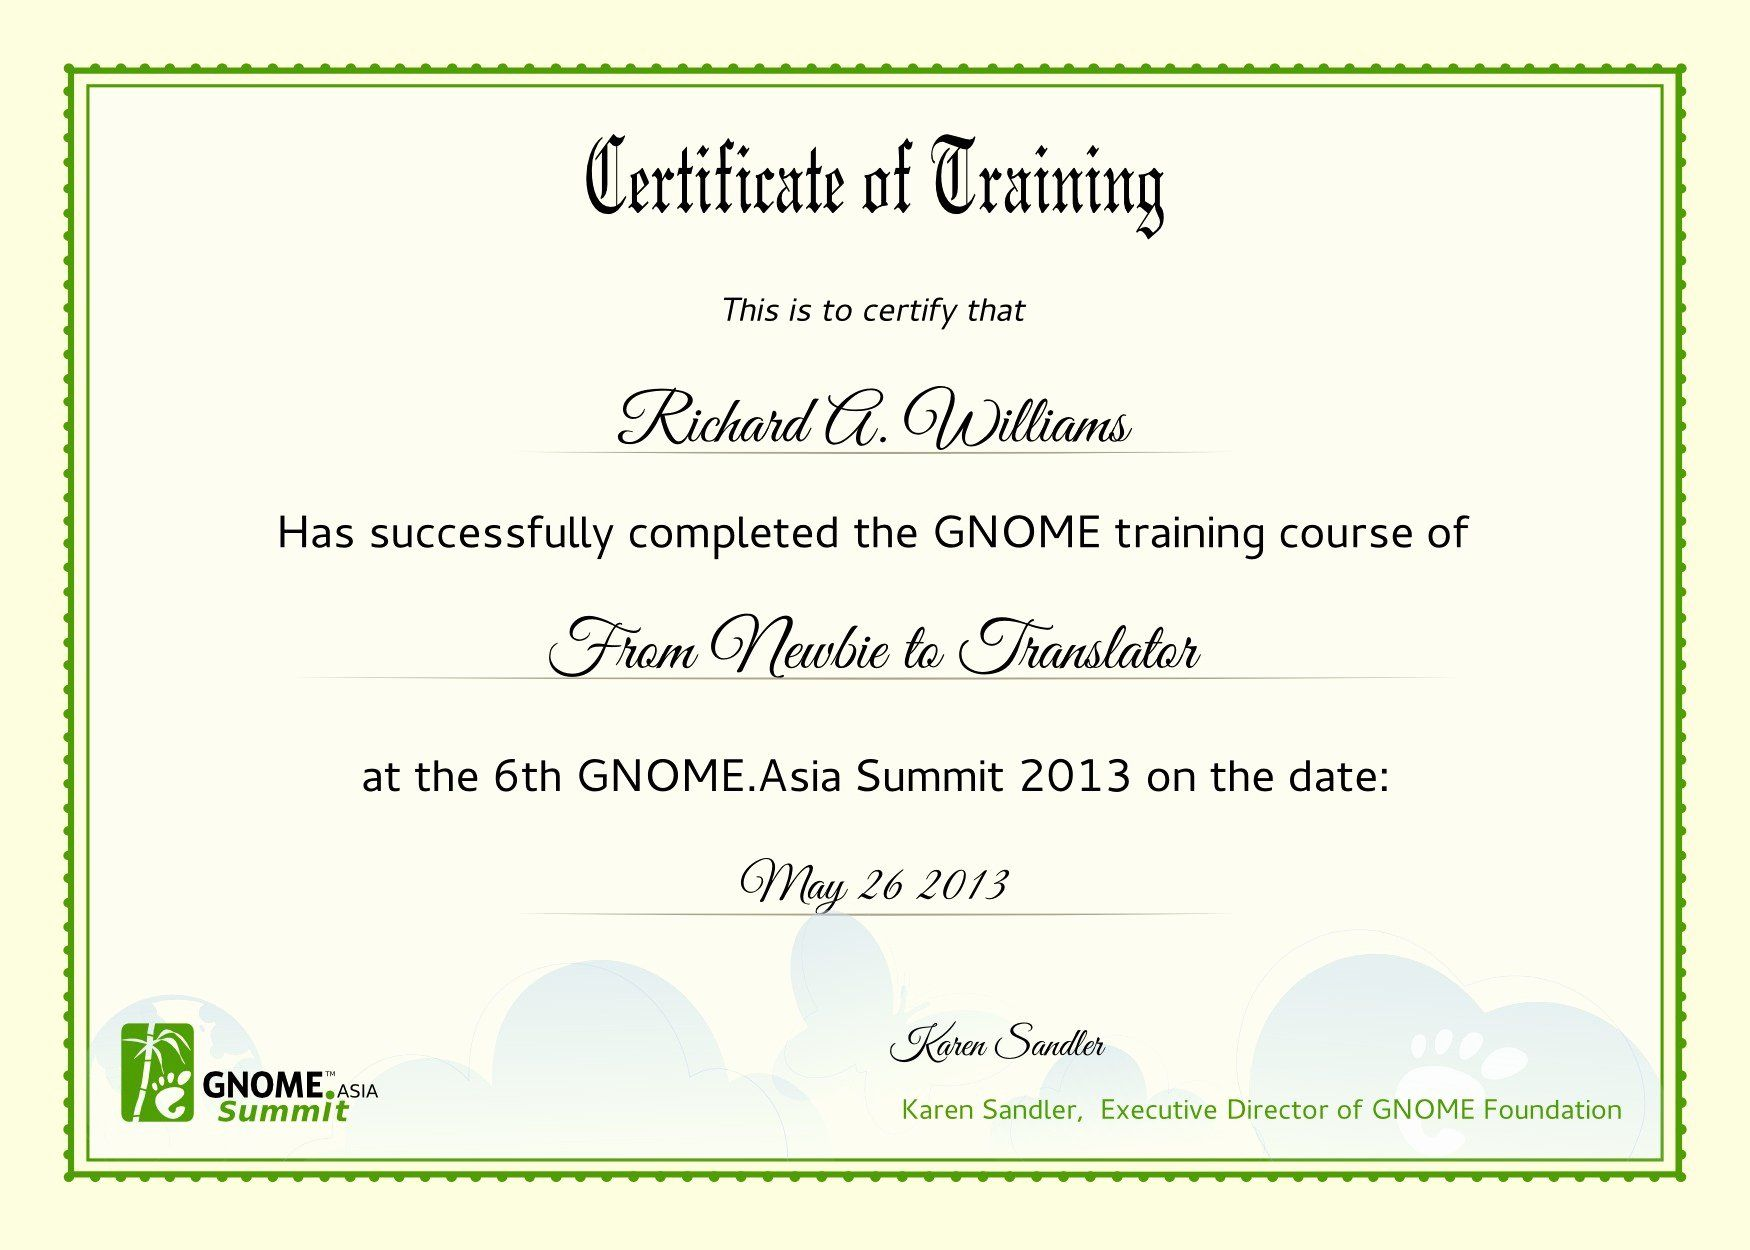 The Astounding 005 Forklift Training Certificate Template Free Pryncepality With Regard To Forkl Training Certificate Certificate Templates Card Templates Free